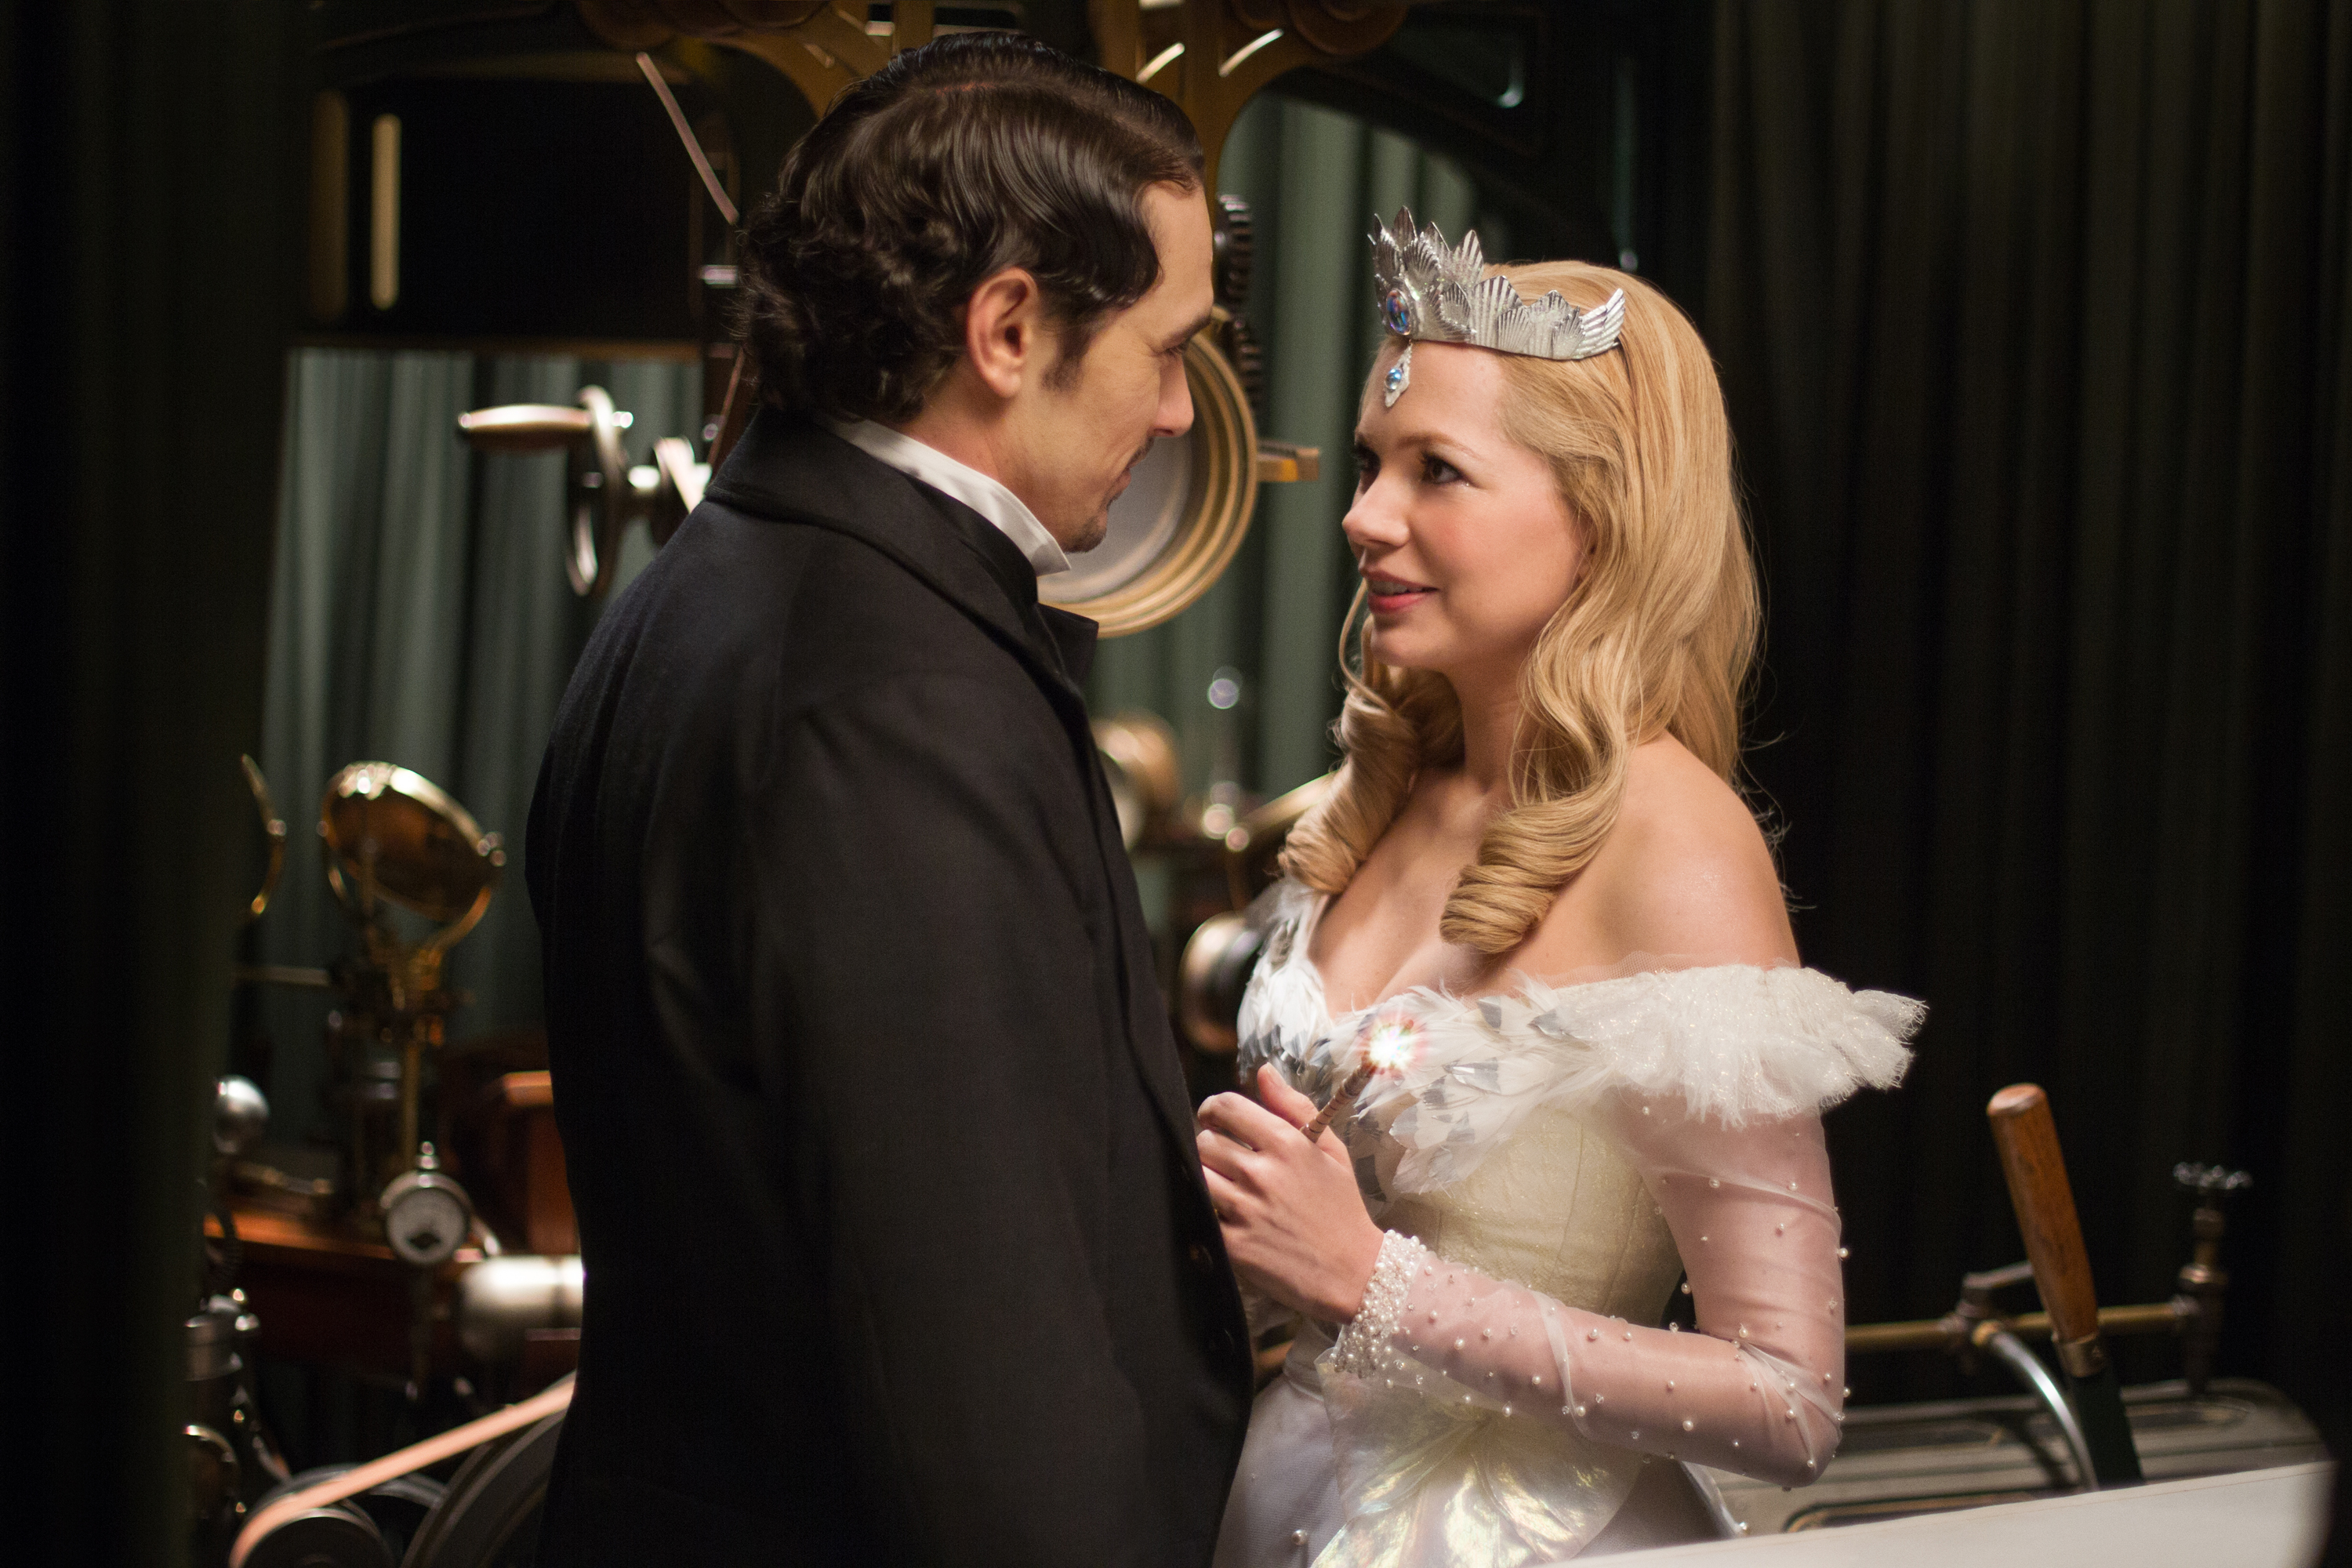 Oz the Great and Powerful beats Side Effects to No. 1 at UK box office